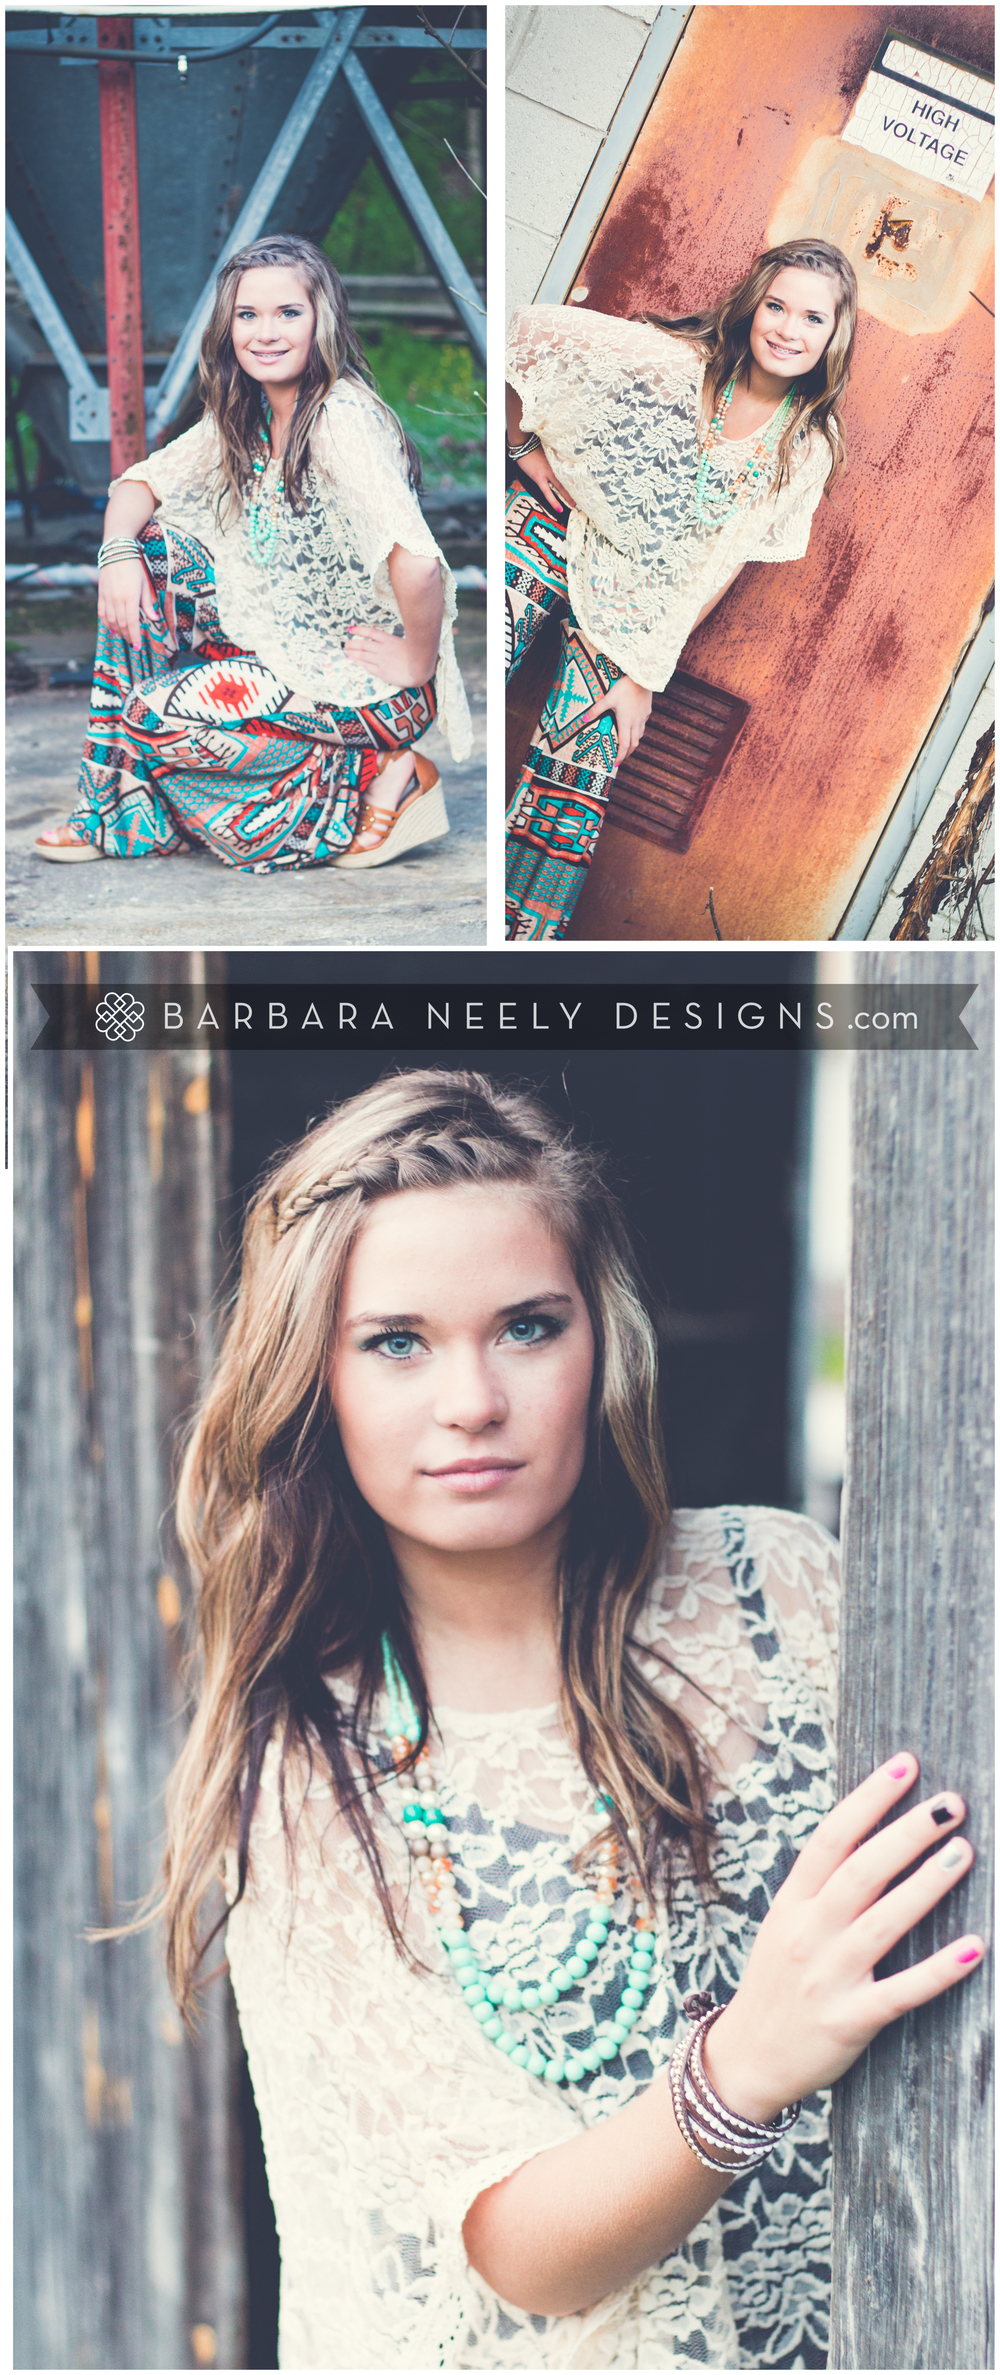 Best Country Senior Photos in Missouri - Mandy Senior 2015 D